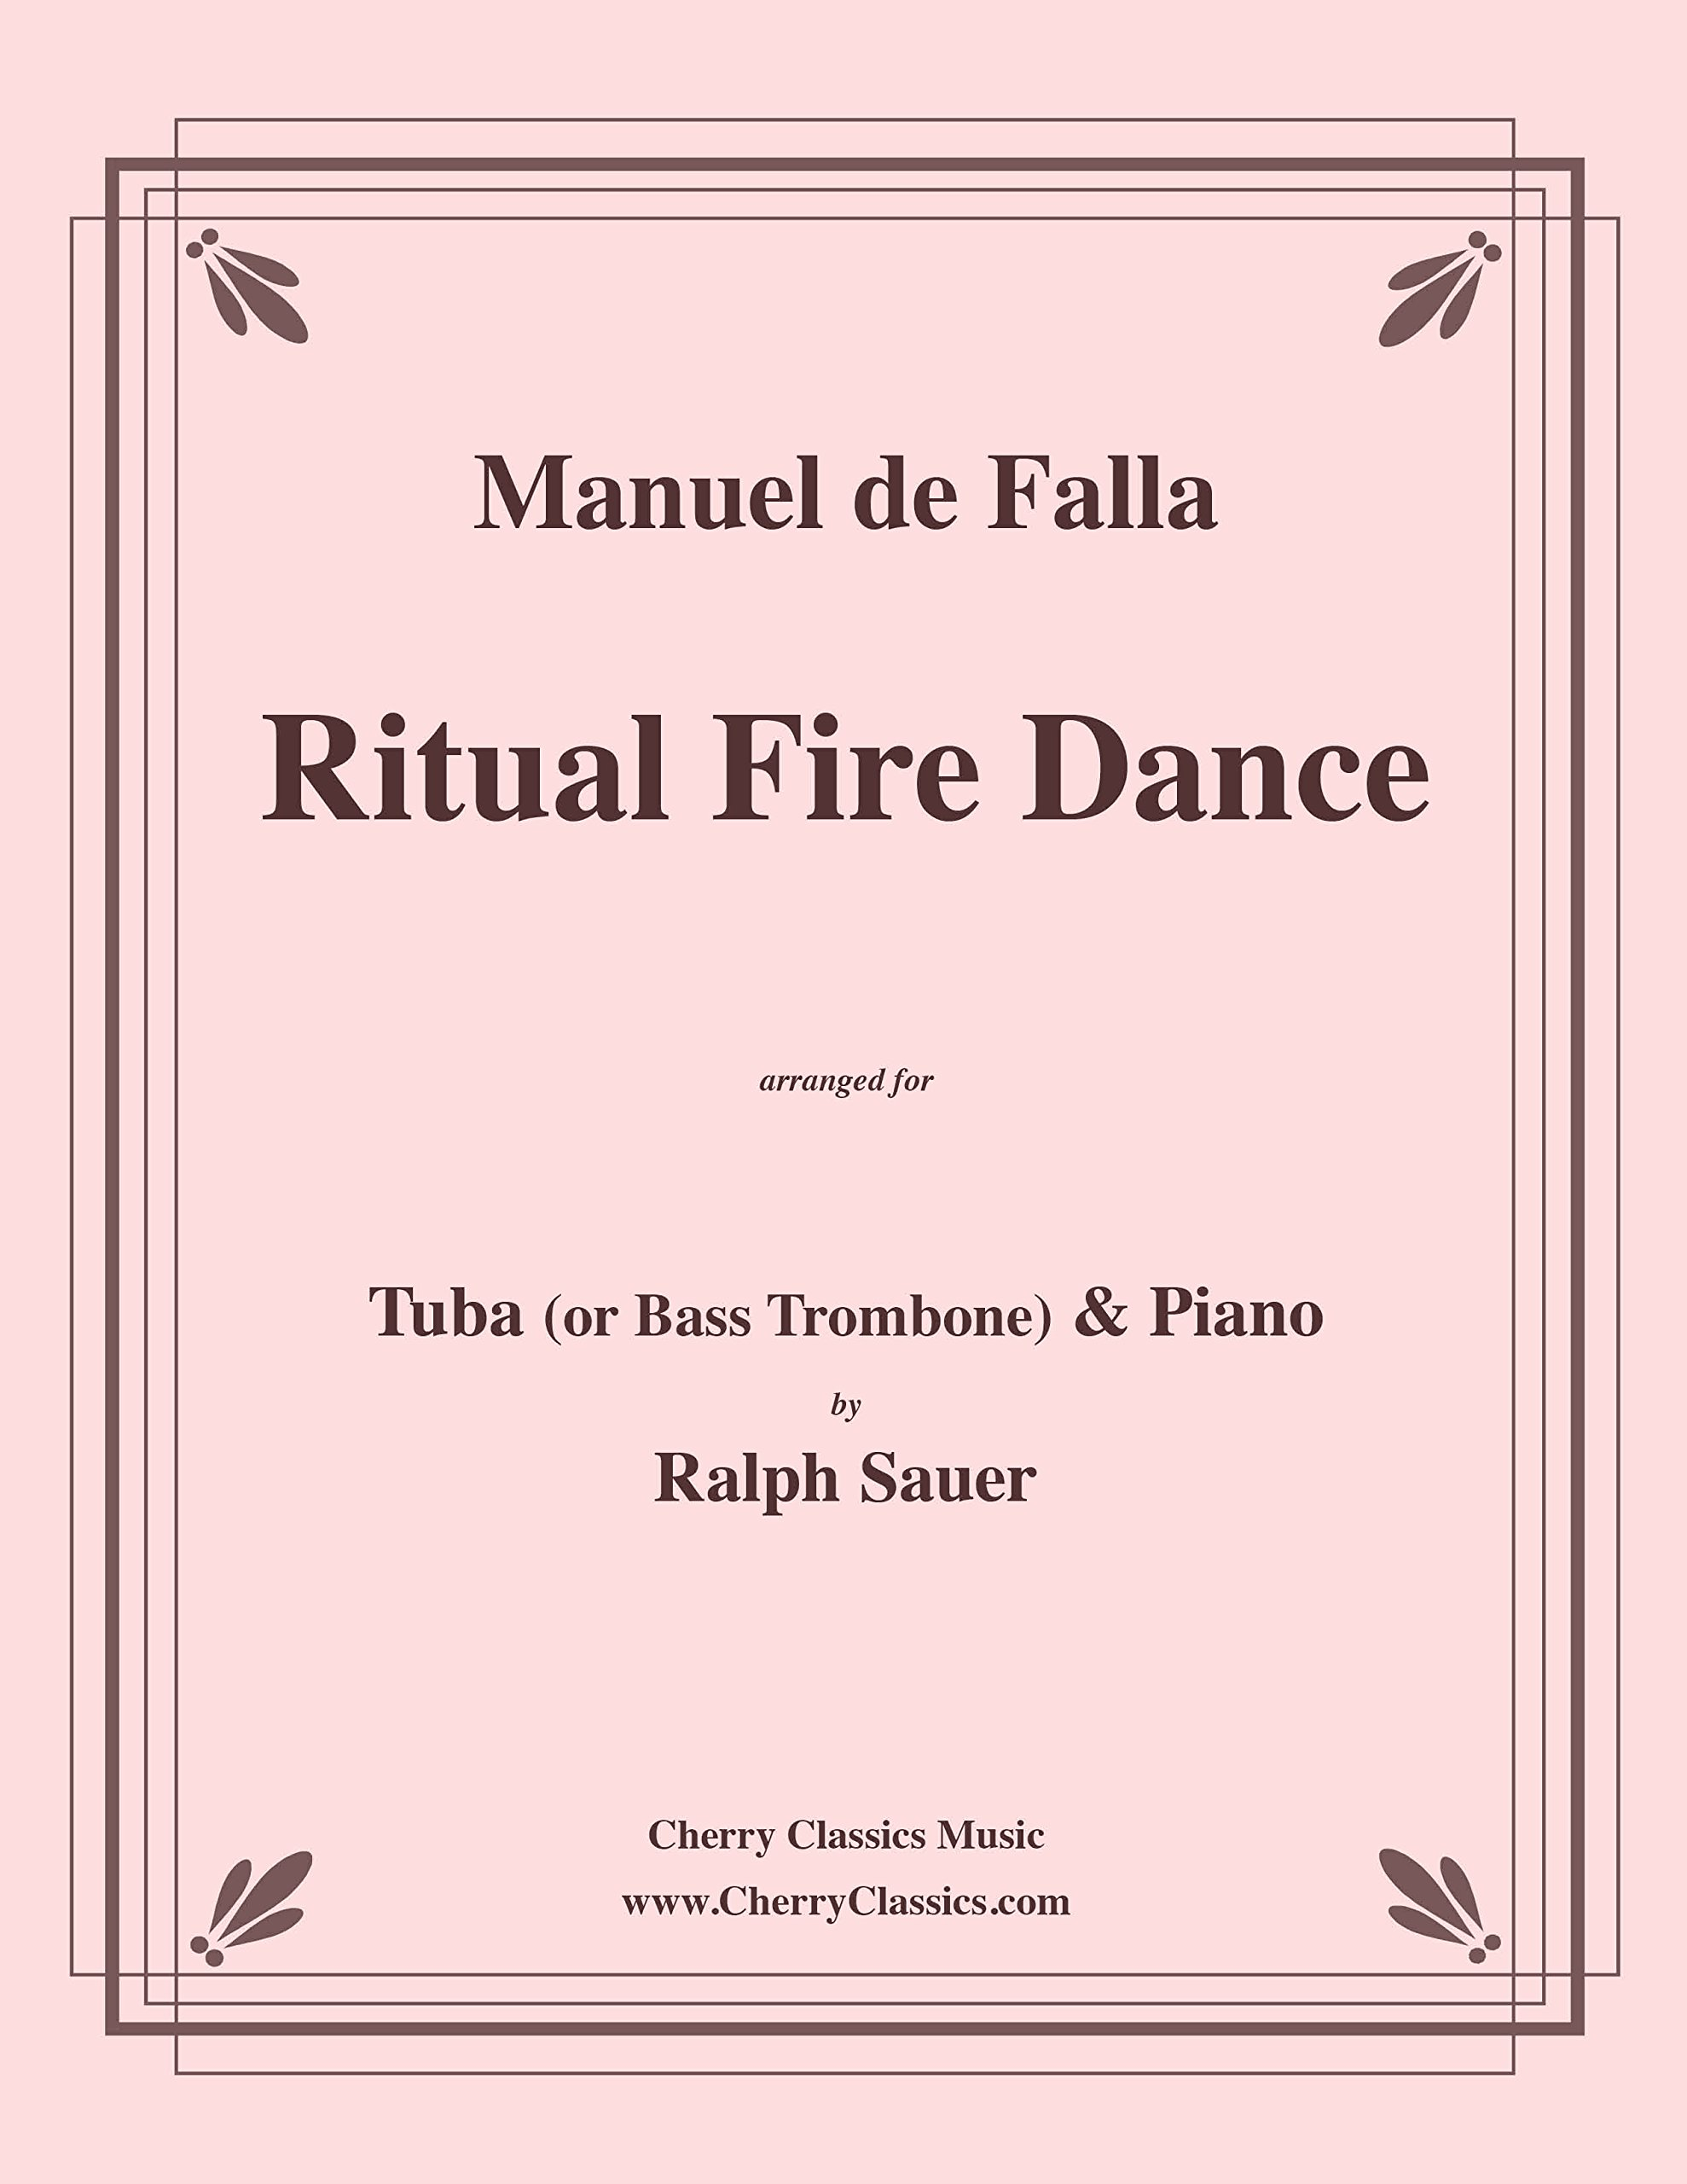 Ritual Fire Dance for Tuba or Bass Trombone and Piano by Manuel de Falla and arranged by Ralph Sauer ebook